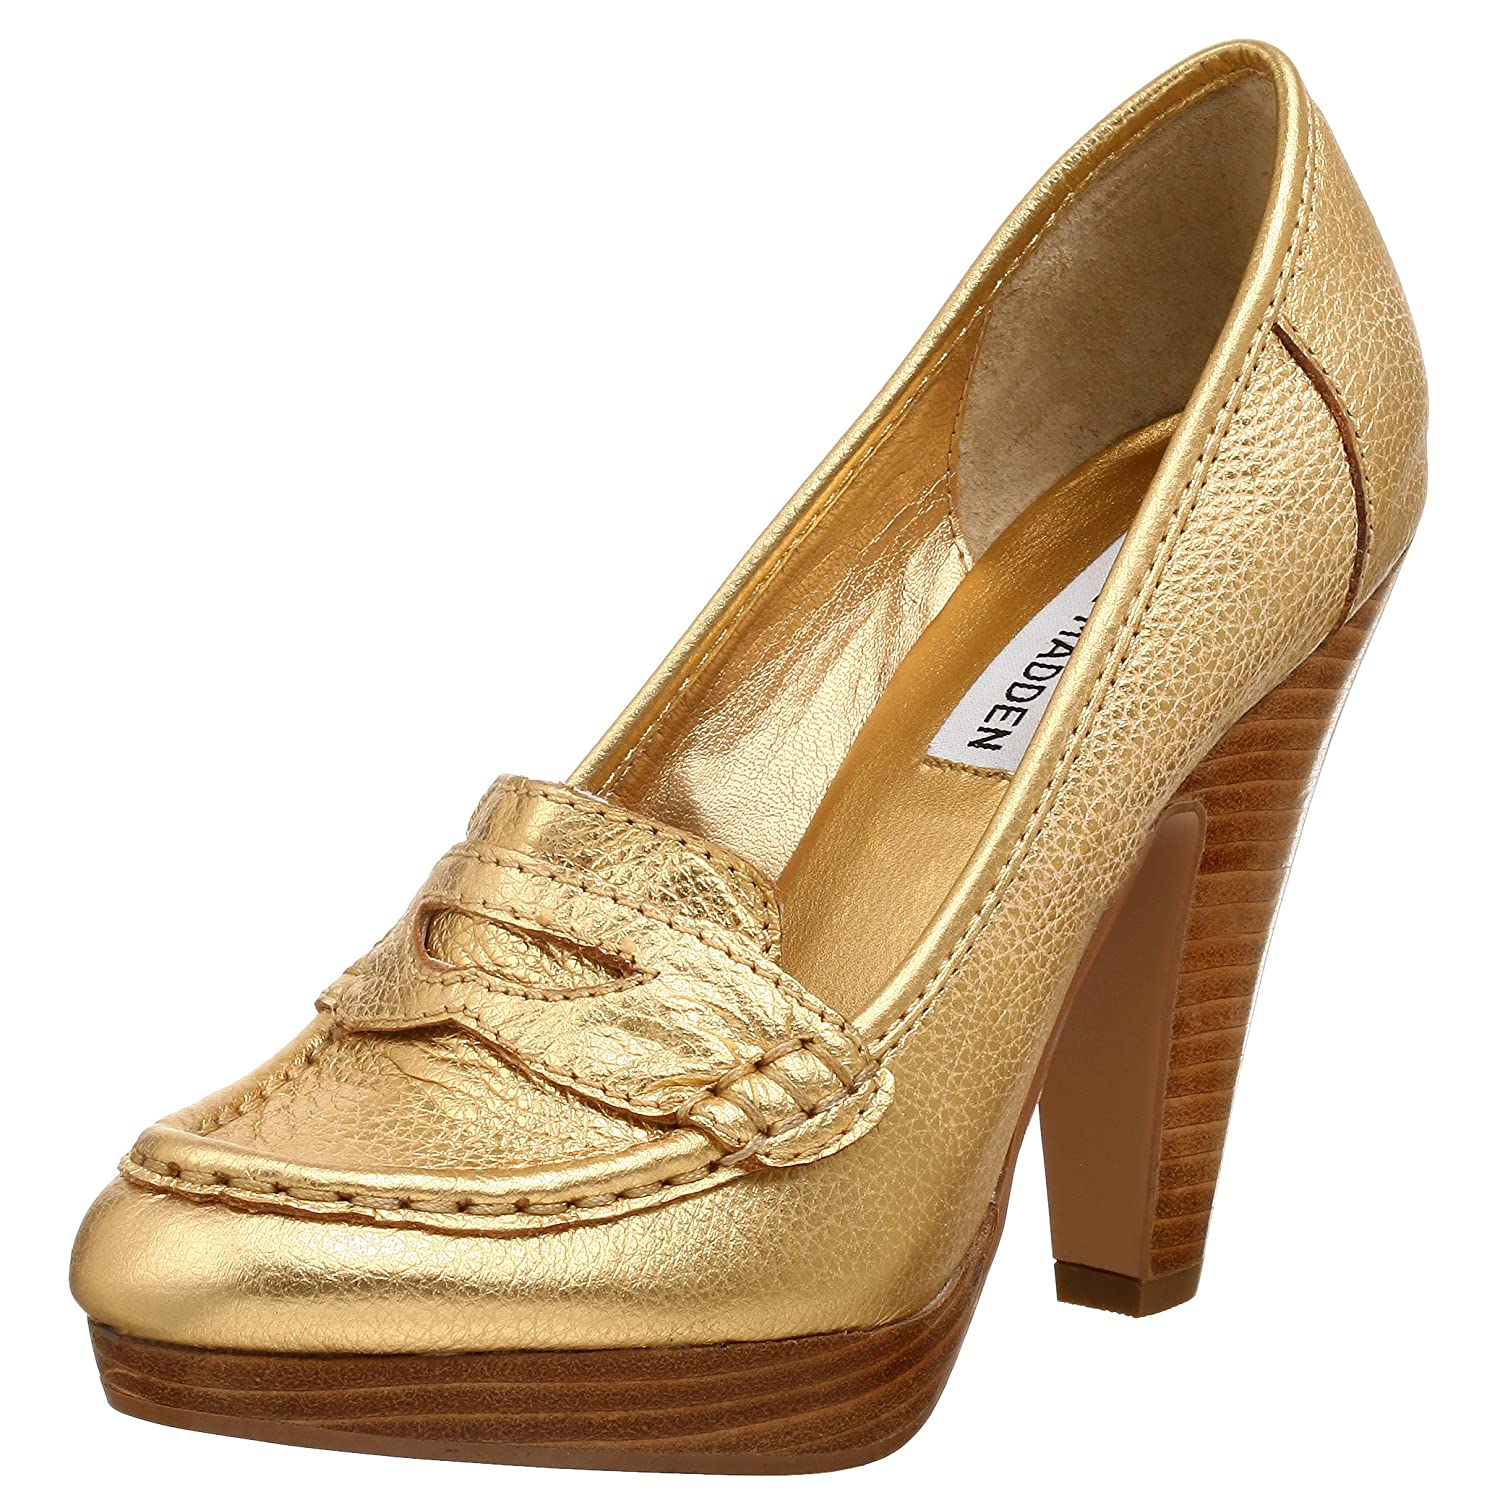 Steve Madden Women's Oldiee Pump - Free Overnight Shipping & Return Shipping: Endless.com from endless.com